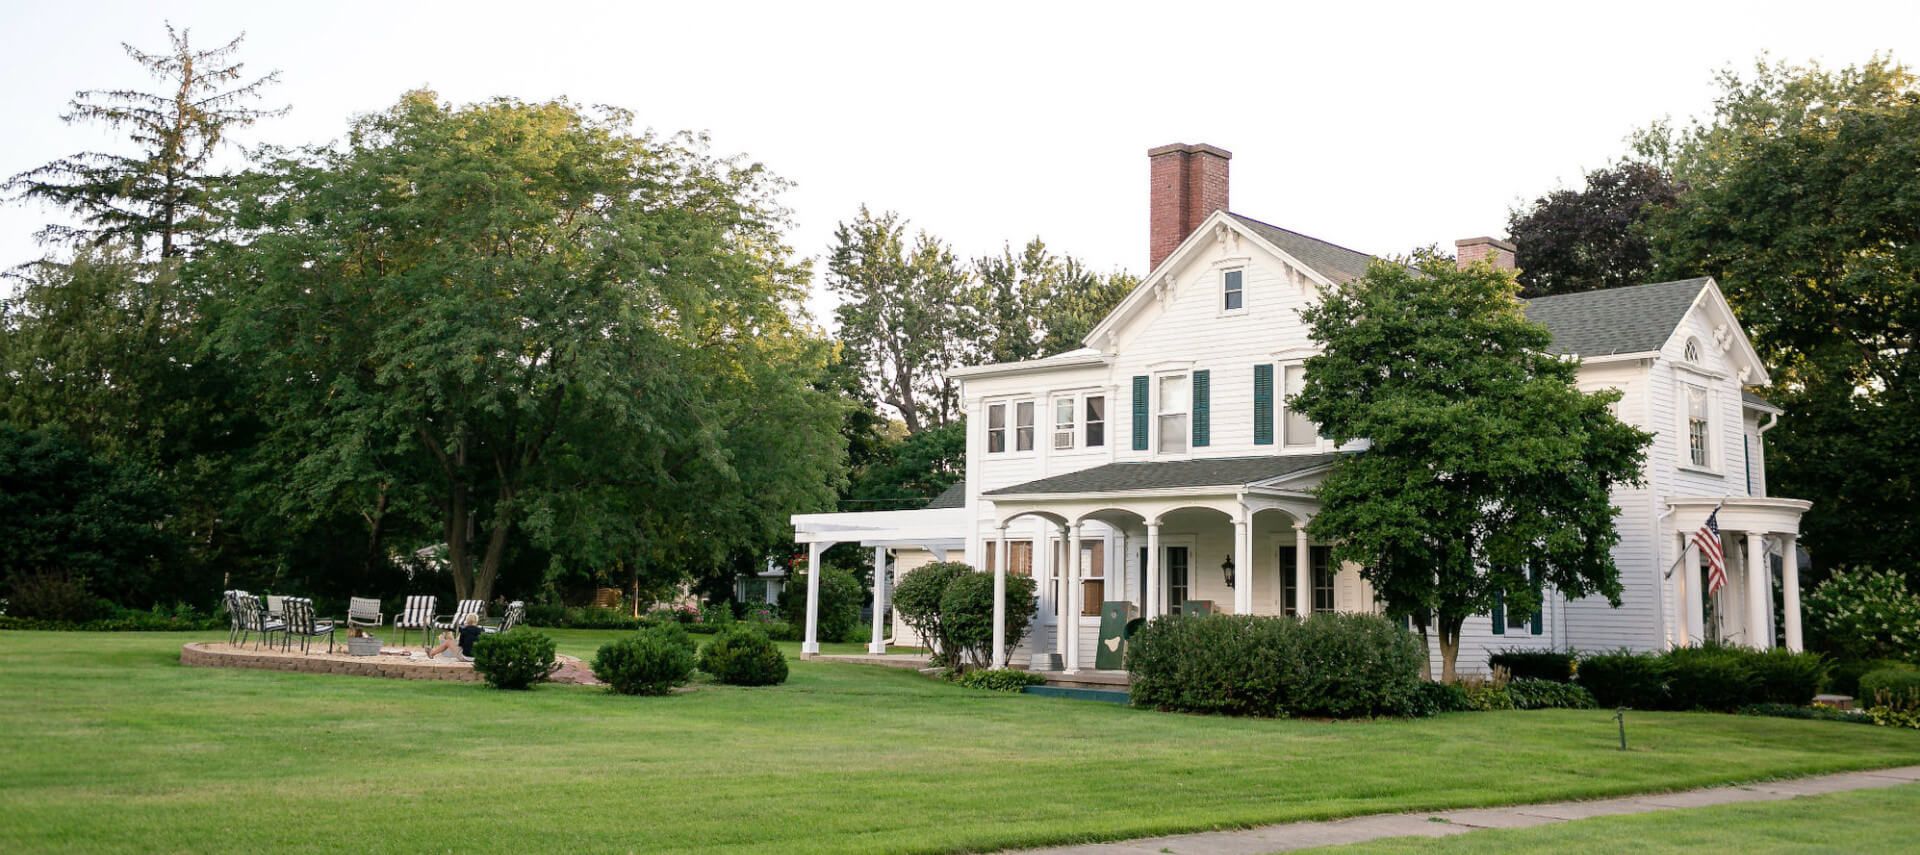 Large white historic home with two stories and a covered porch.